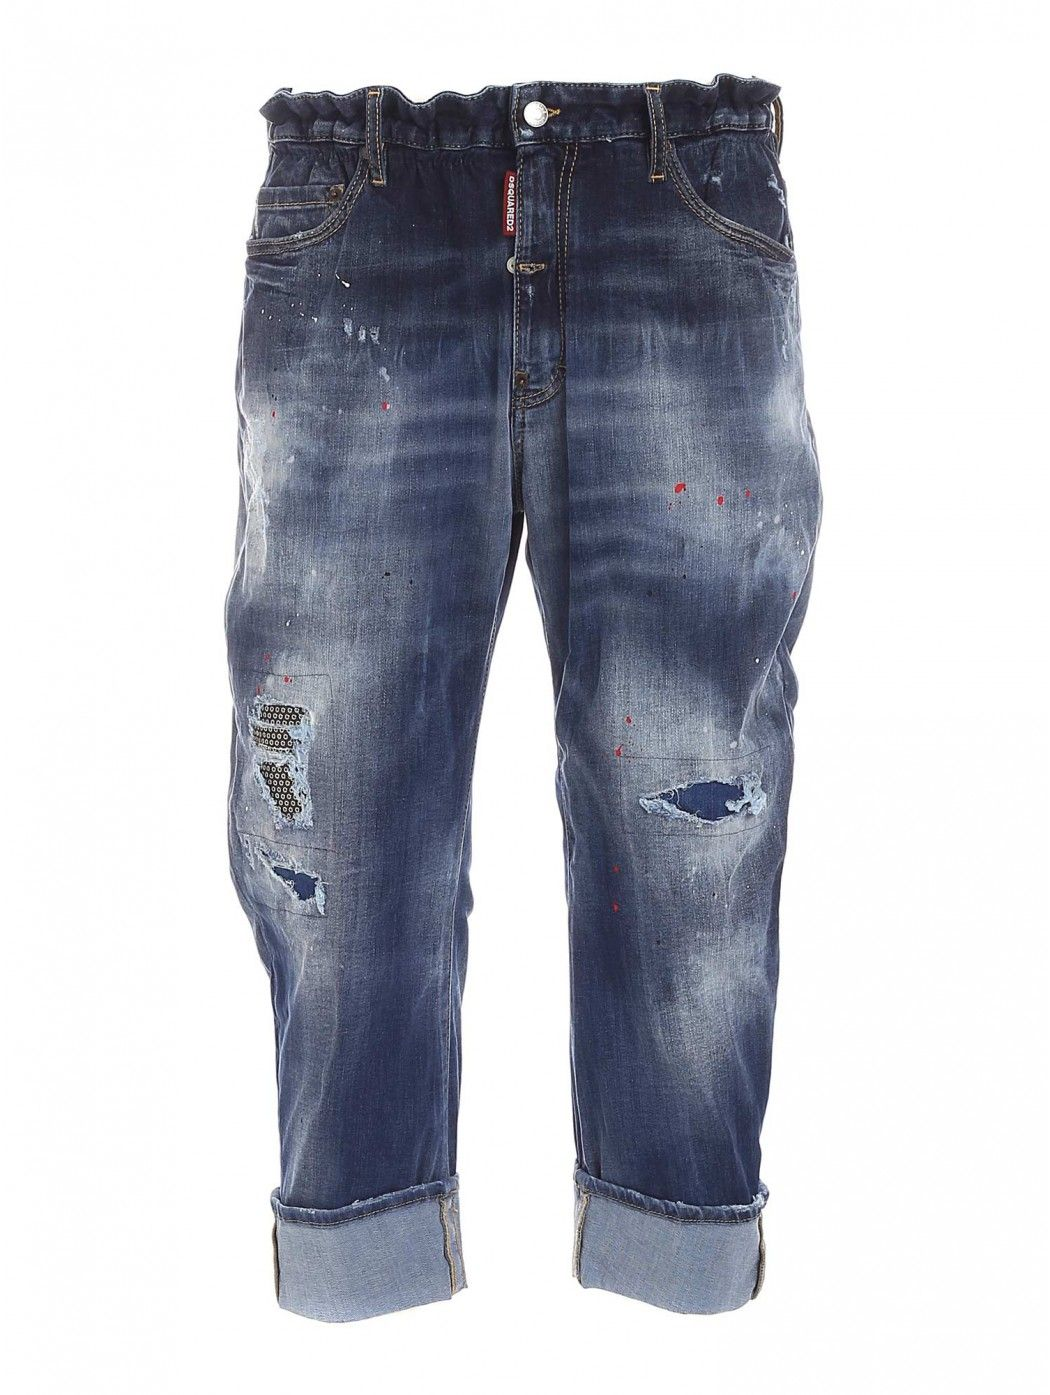 JEANS BIG BROTHER BLU DSQUARED2 S74LB1003S30708 470